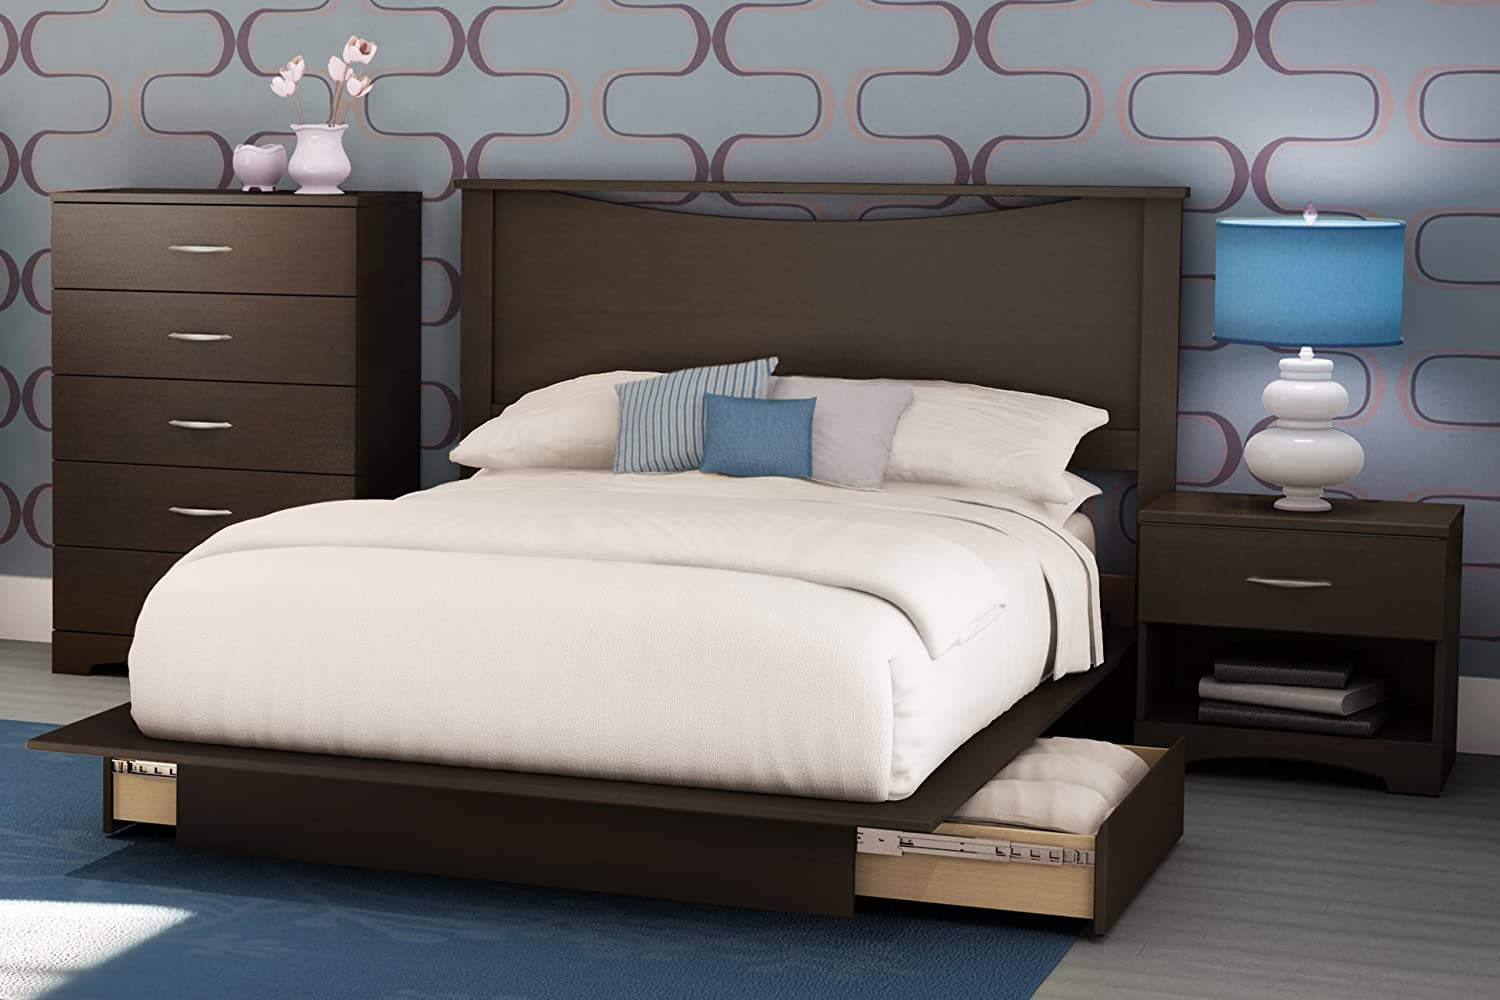 Cheap bedroom sets for sale top bedroom sets review - Cheap bedroom furniture sets online ...